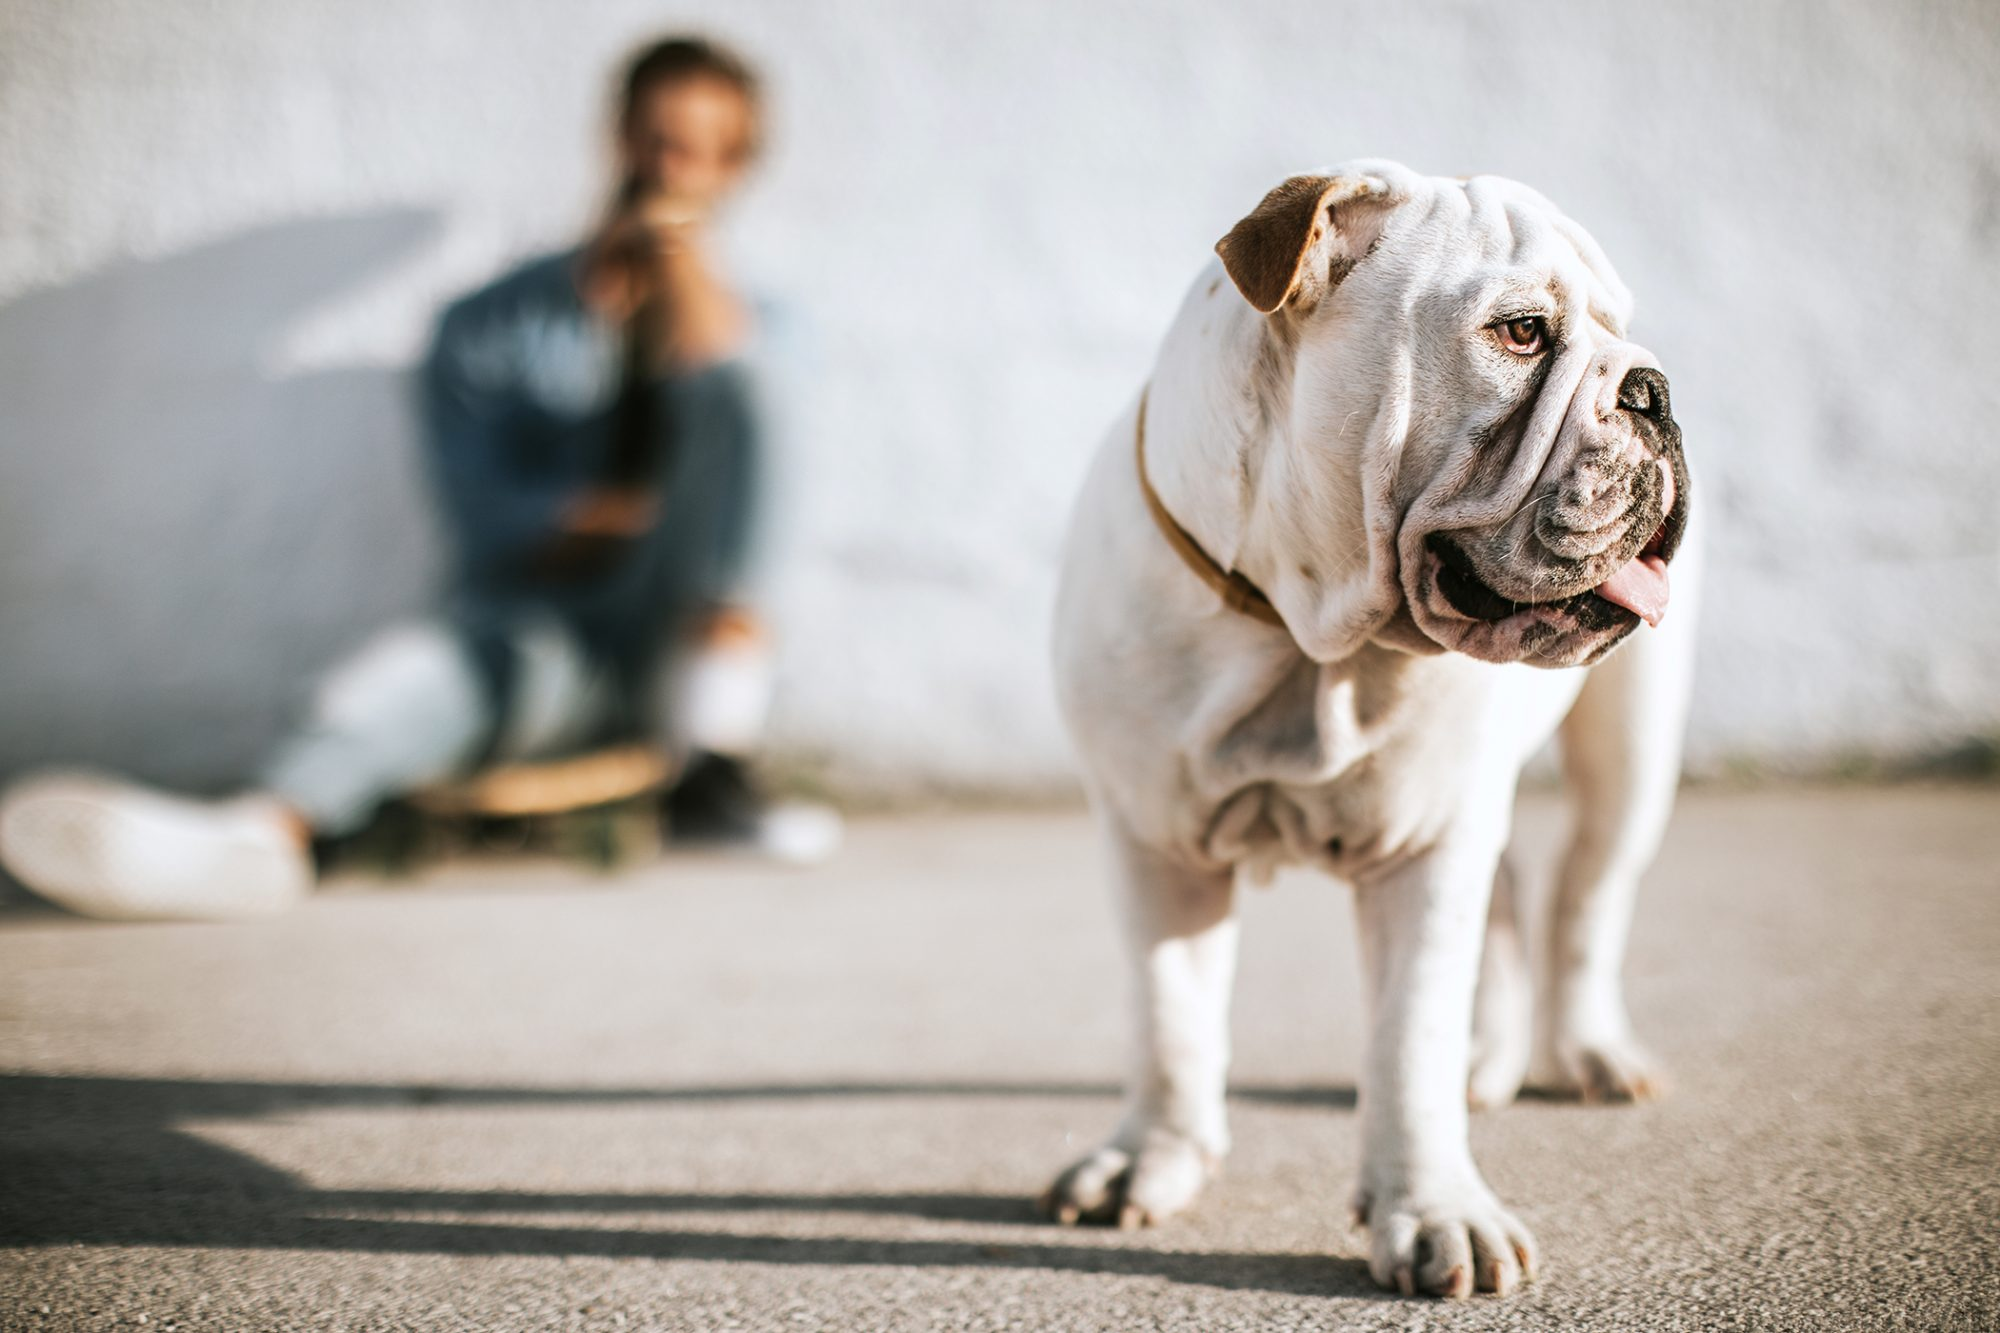 English bulldog standing on pavement with his owner in the background